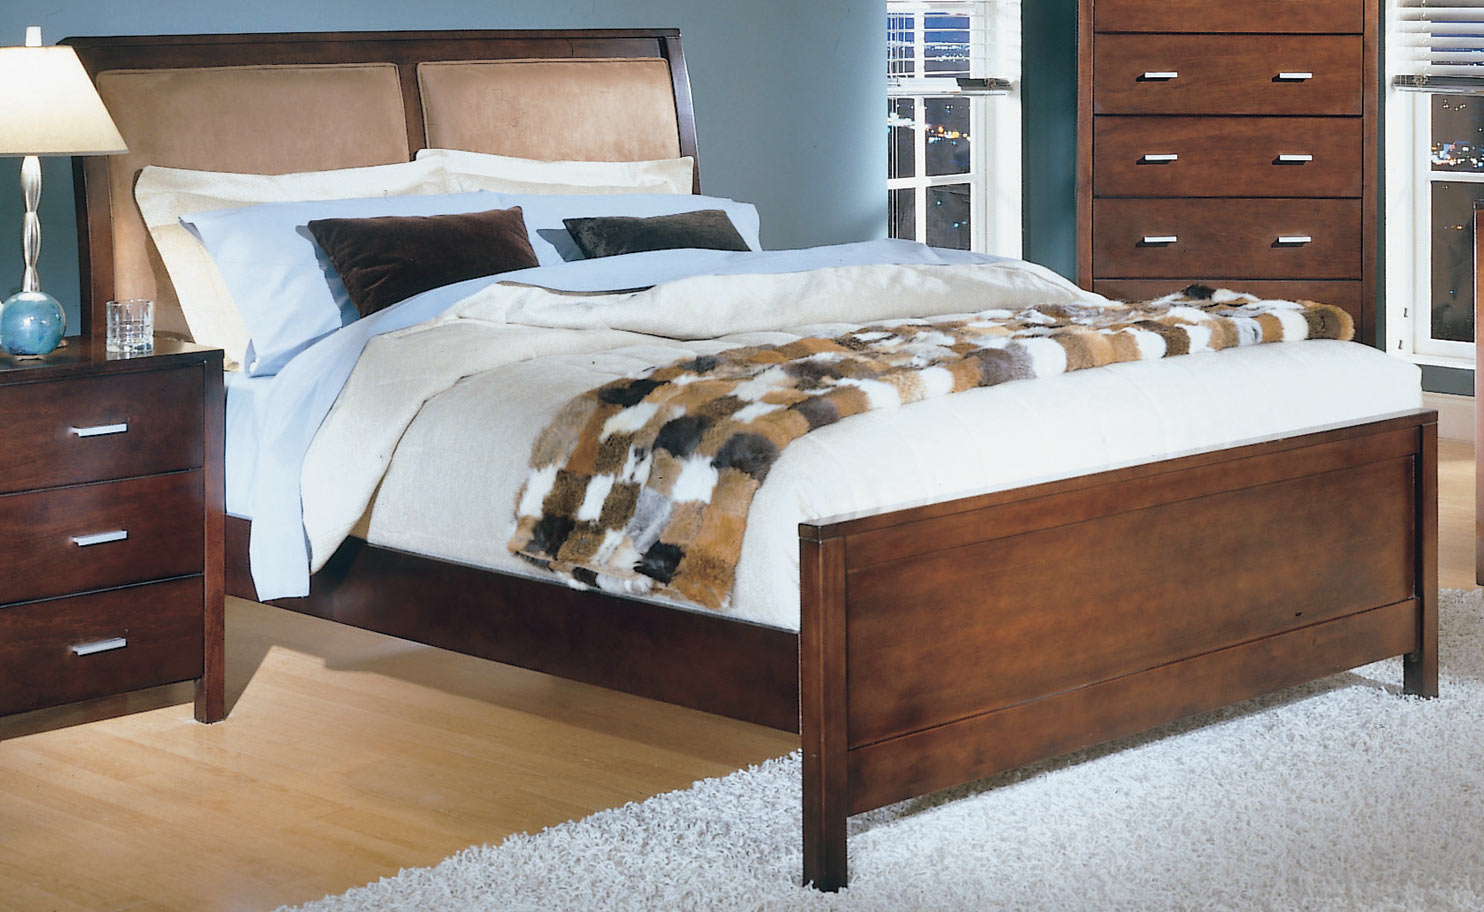 Strata Bed With Microfiber Headboard-Homelegance